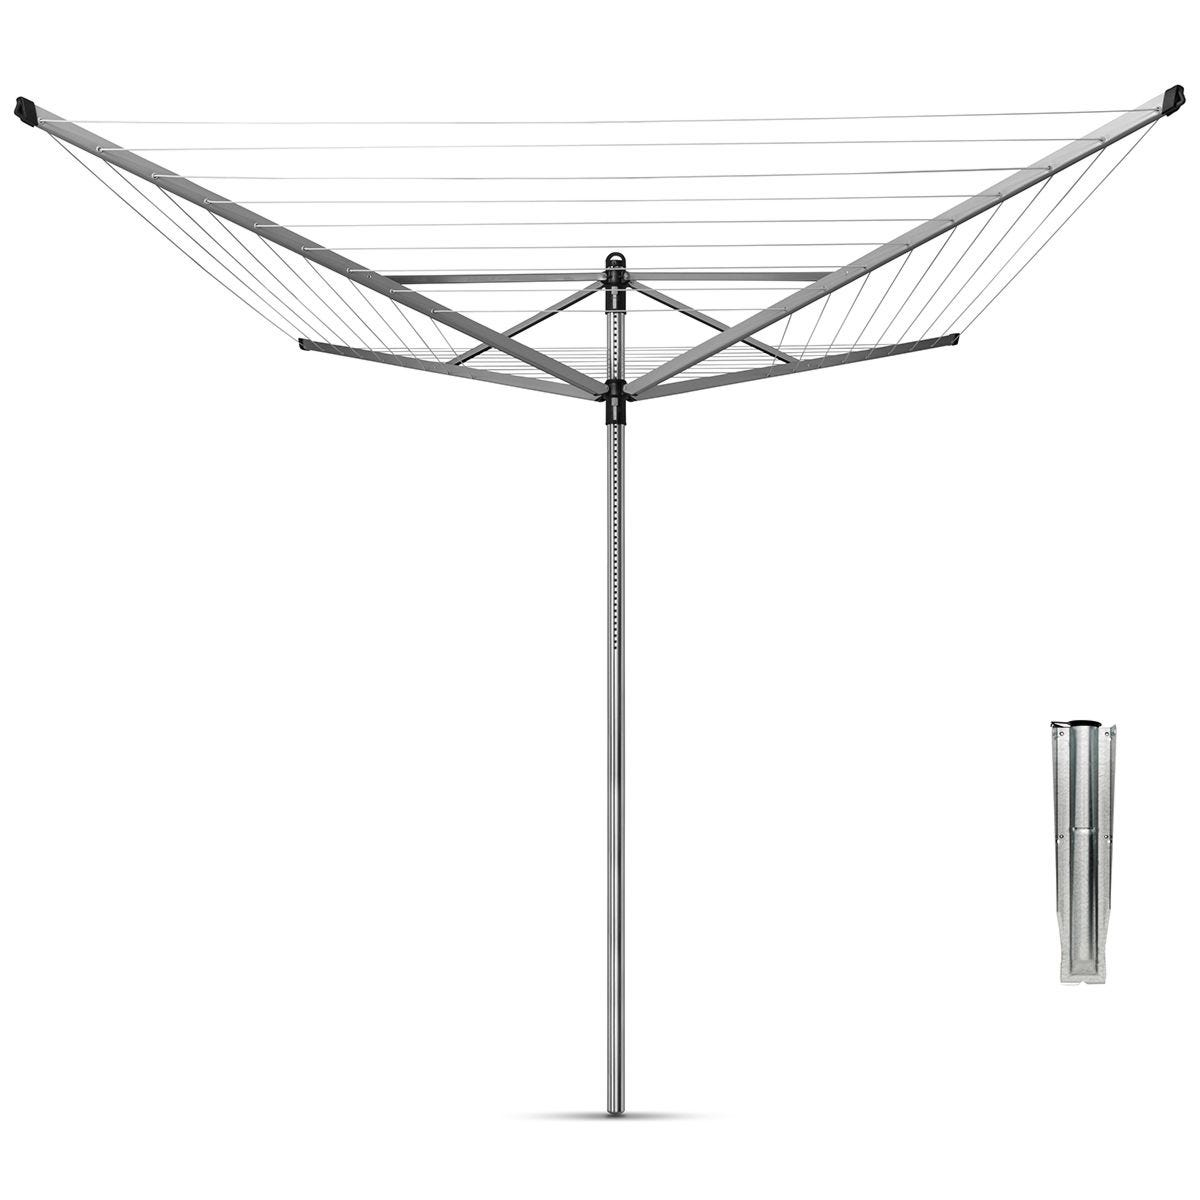 Brabantia Lift-O-Matic 60m 4-Arm Rotary Airer with Ground Spike